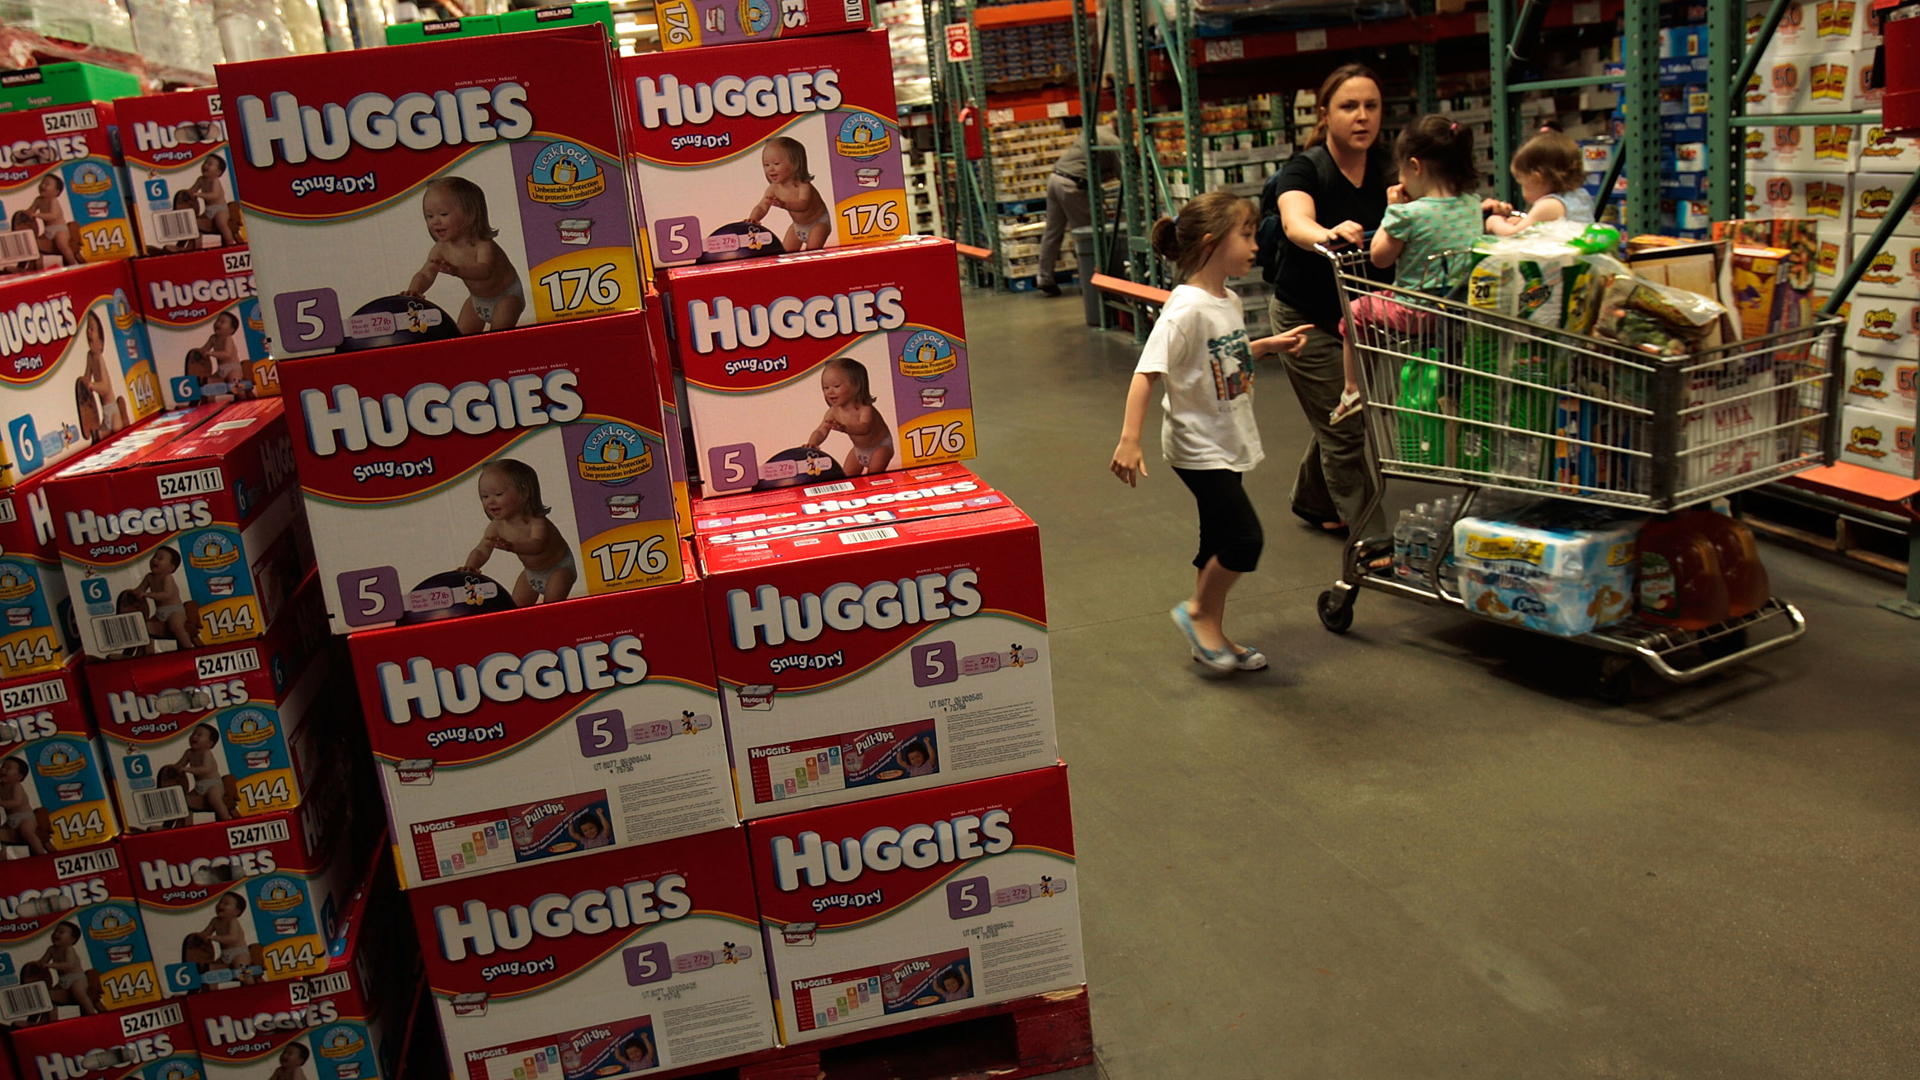 A family passes by bulk packages of diapers at a Costco store April 4, 2008 in Tucson, Arizona. (Credit: Chris Hondros/Getty Images)